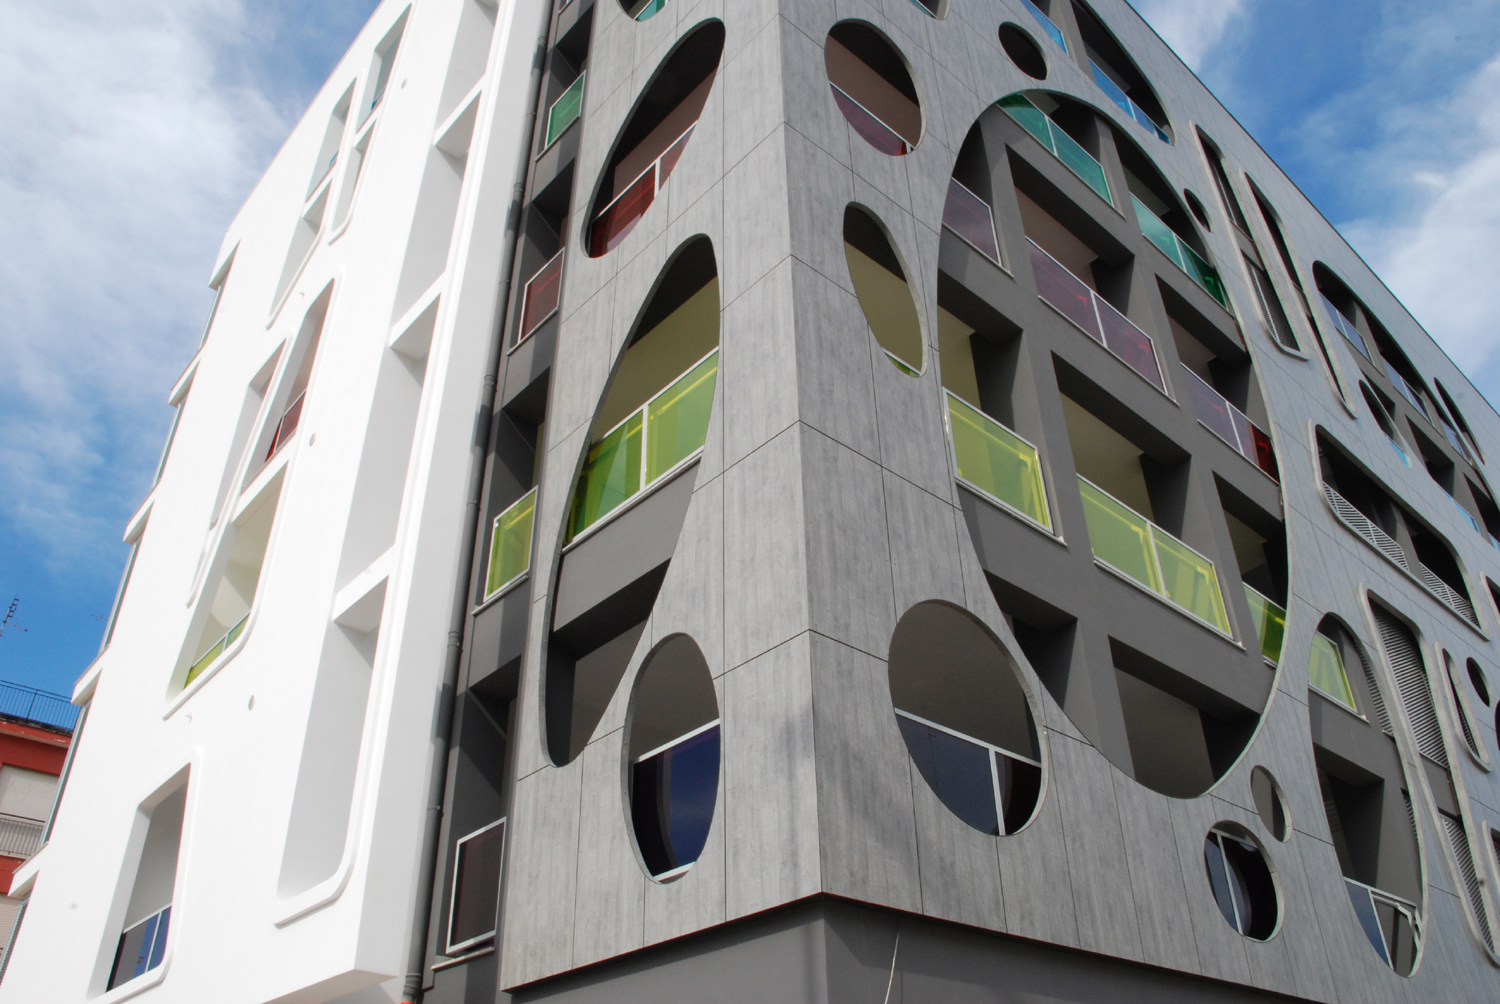 cladding on buildings trespa essay Wall cladding or facade cladding, is a decorative method using various types of wall panels to make a wall look different from its original appearance apart from making a building look different and architectually appealing, wall cladding.